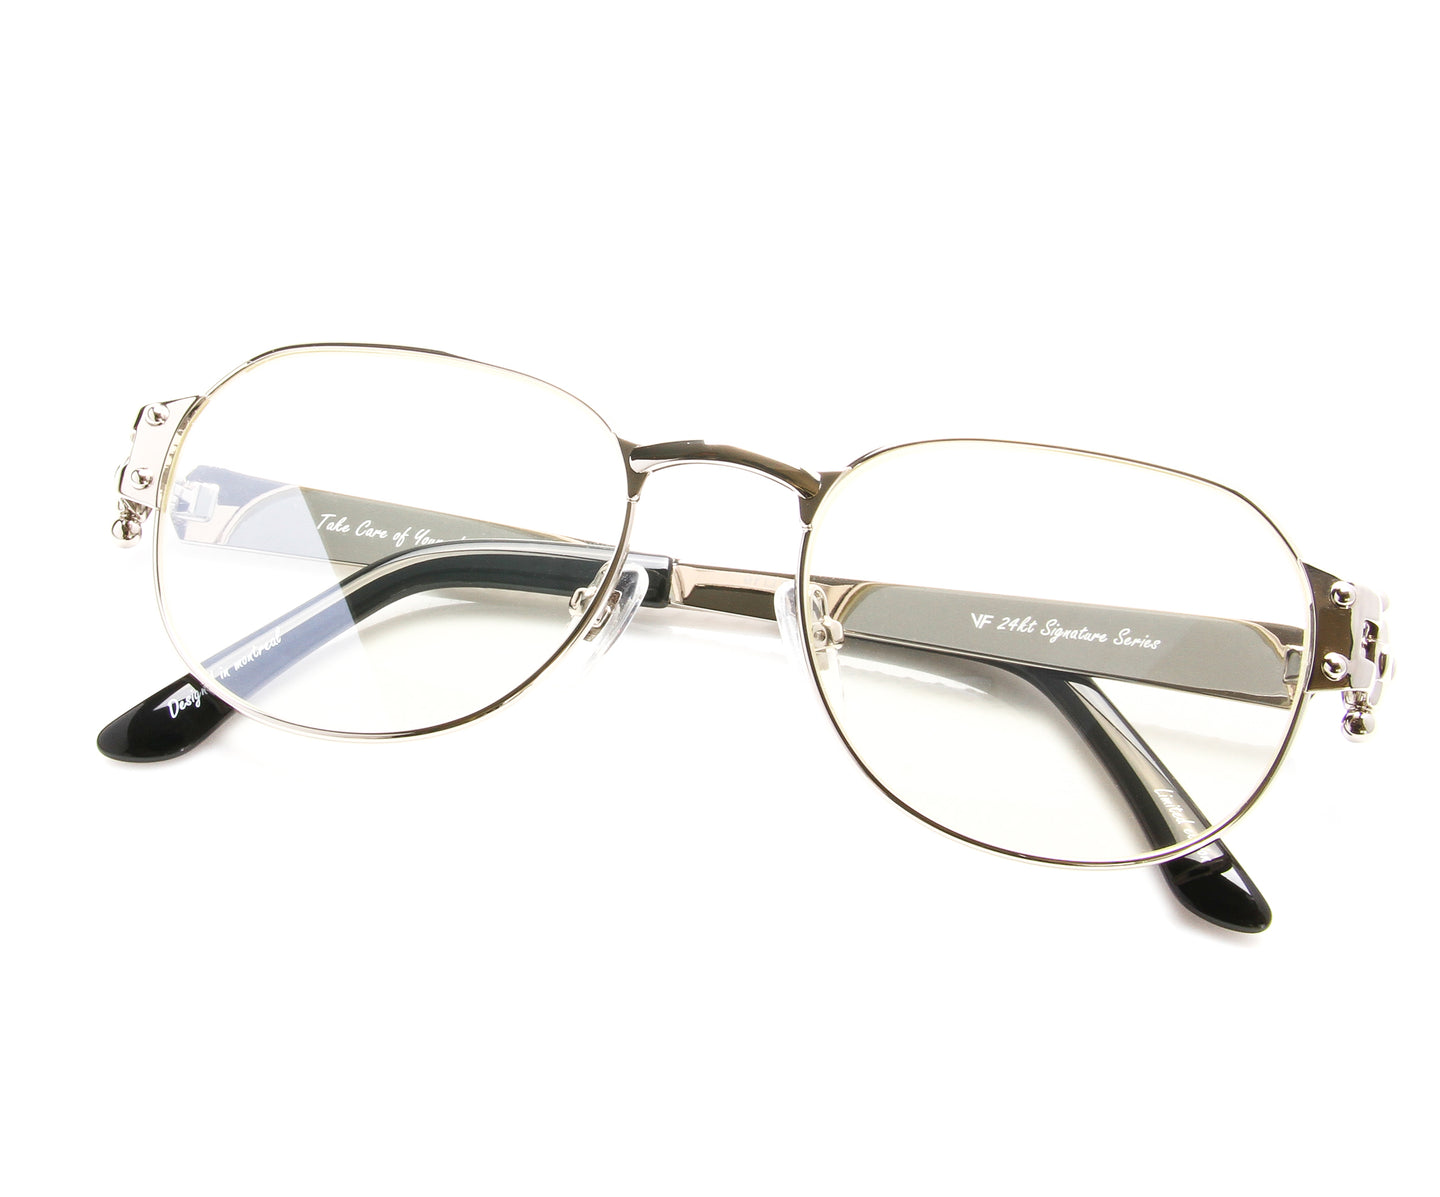 VF 1999 24KT White Gold Masterpiece (Flash Silver), VF Masterpiece , glasses frames, eyeglasses online, eyeglass frames, mens glasses, womens glasses, buy glasses online, designer eyeglasses, vintage sunglasses, retro sunglasses, vintage glasses, sunglass, eyeglass, glasses, lens, vintage frames company, vf